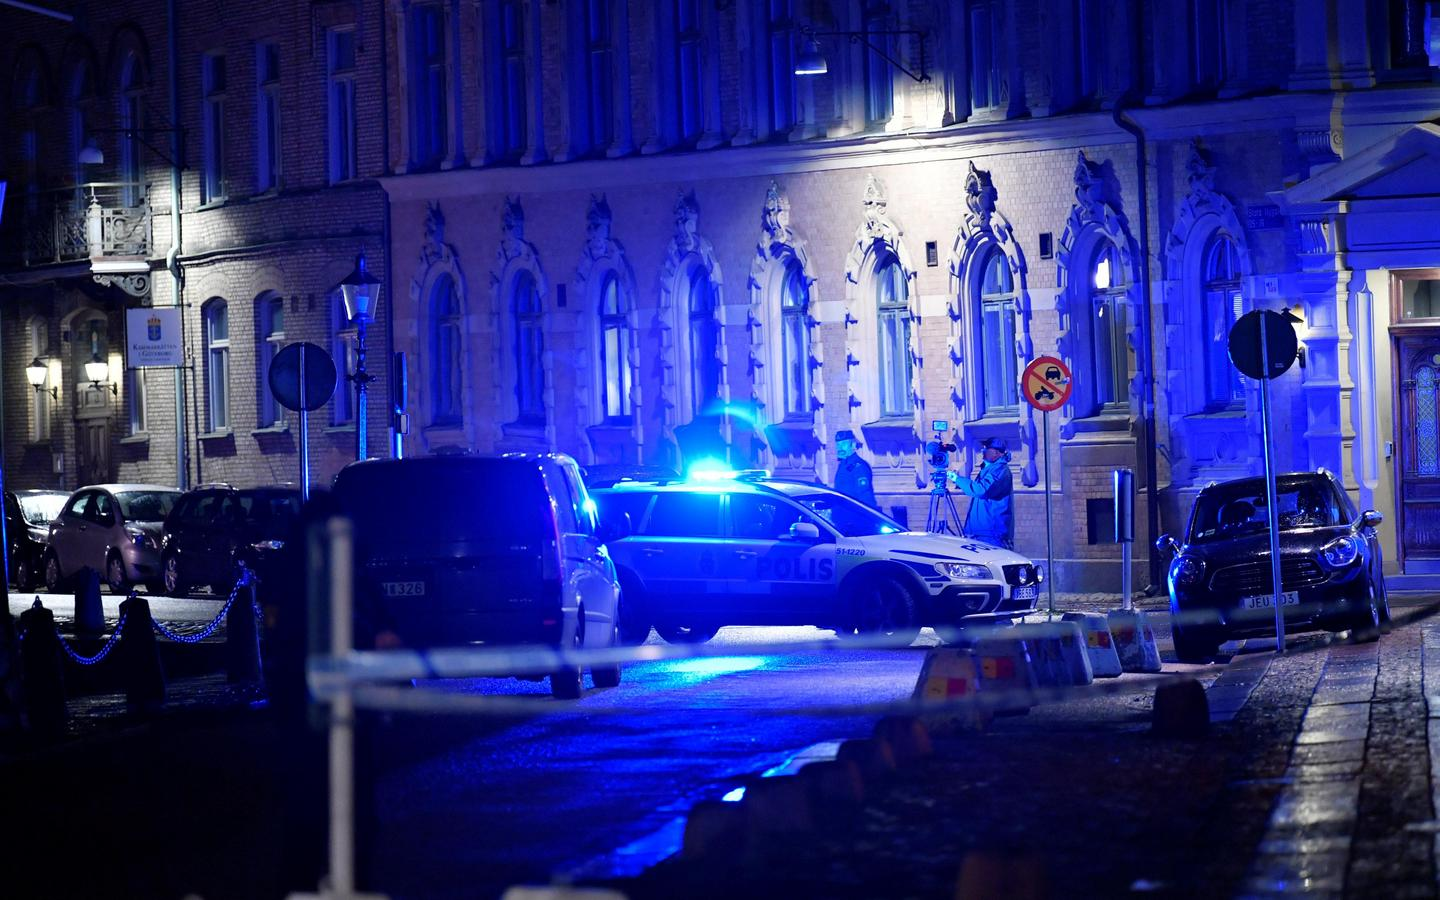 gothenburg synagogue attack another type of anti-semitism in Sweden